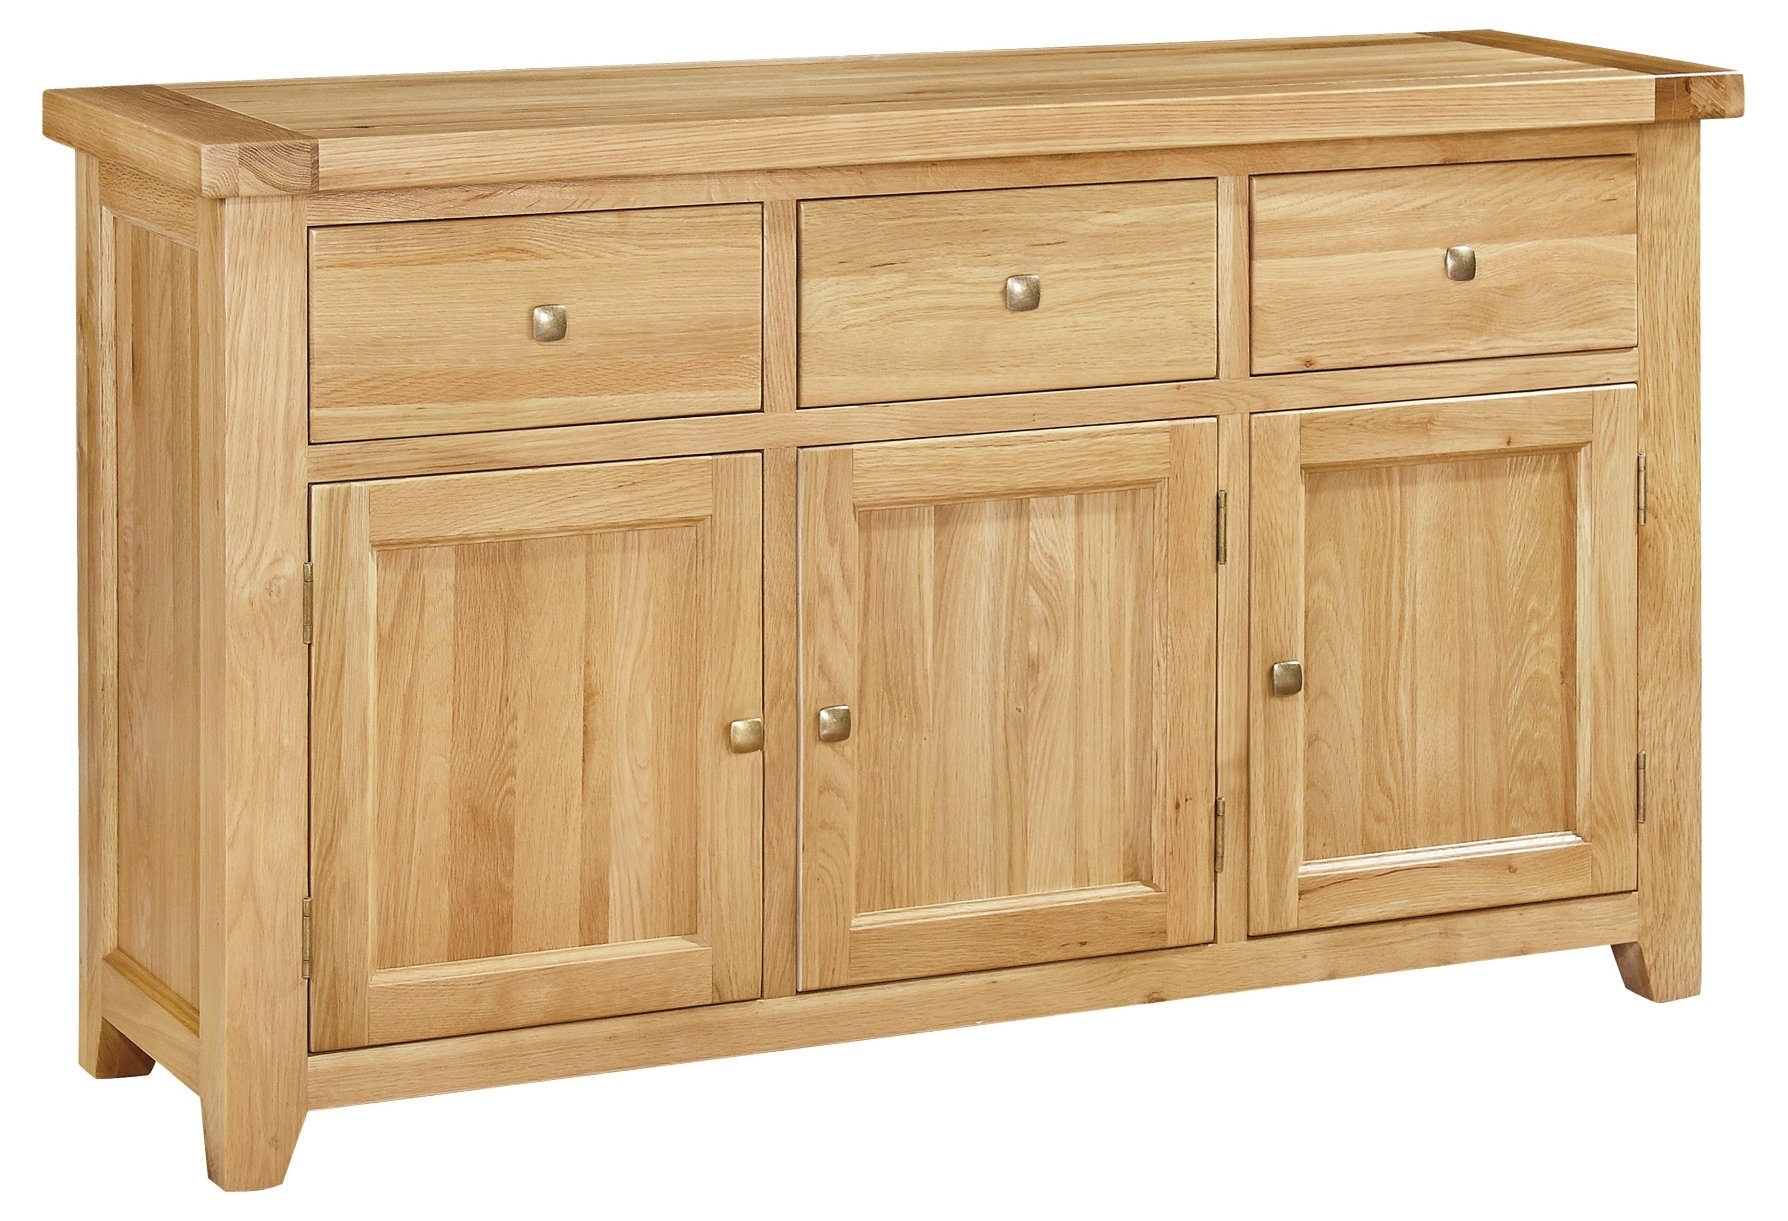 Natur Pur Paulita 3 Door 3 Drawer Sideboard | Wayfair.co.uk With 3 Door 3 Drawer Metal Inserts Sideboards (Photo 4 of 30)